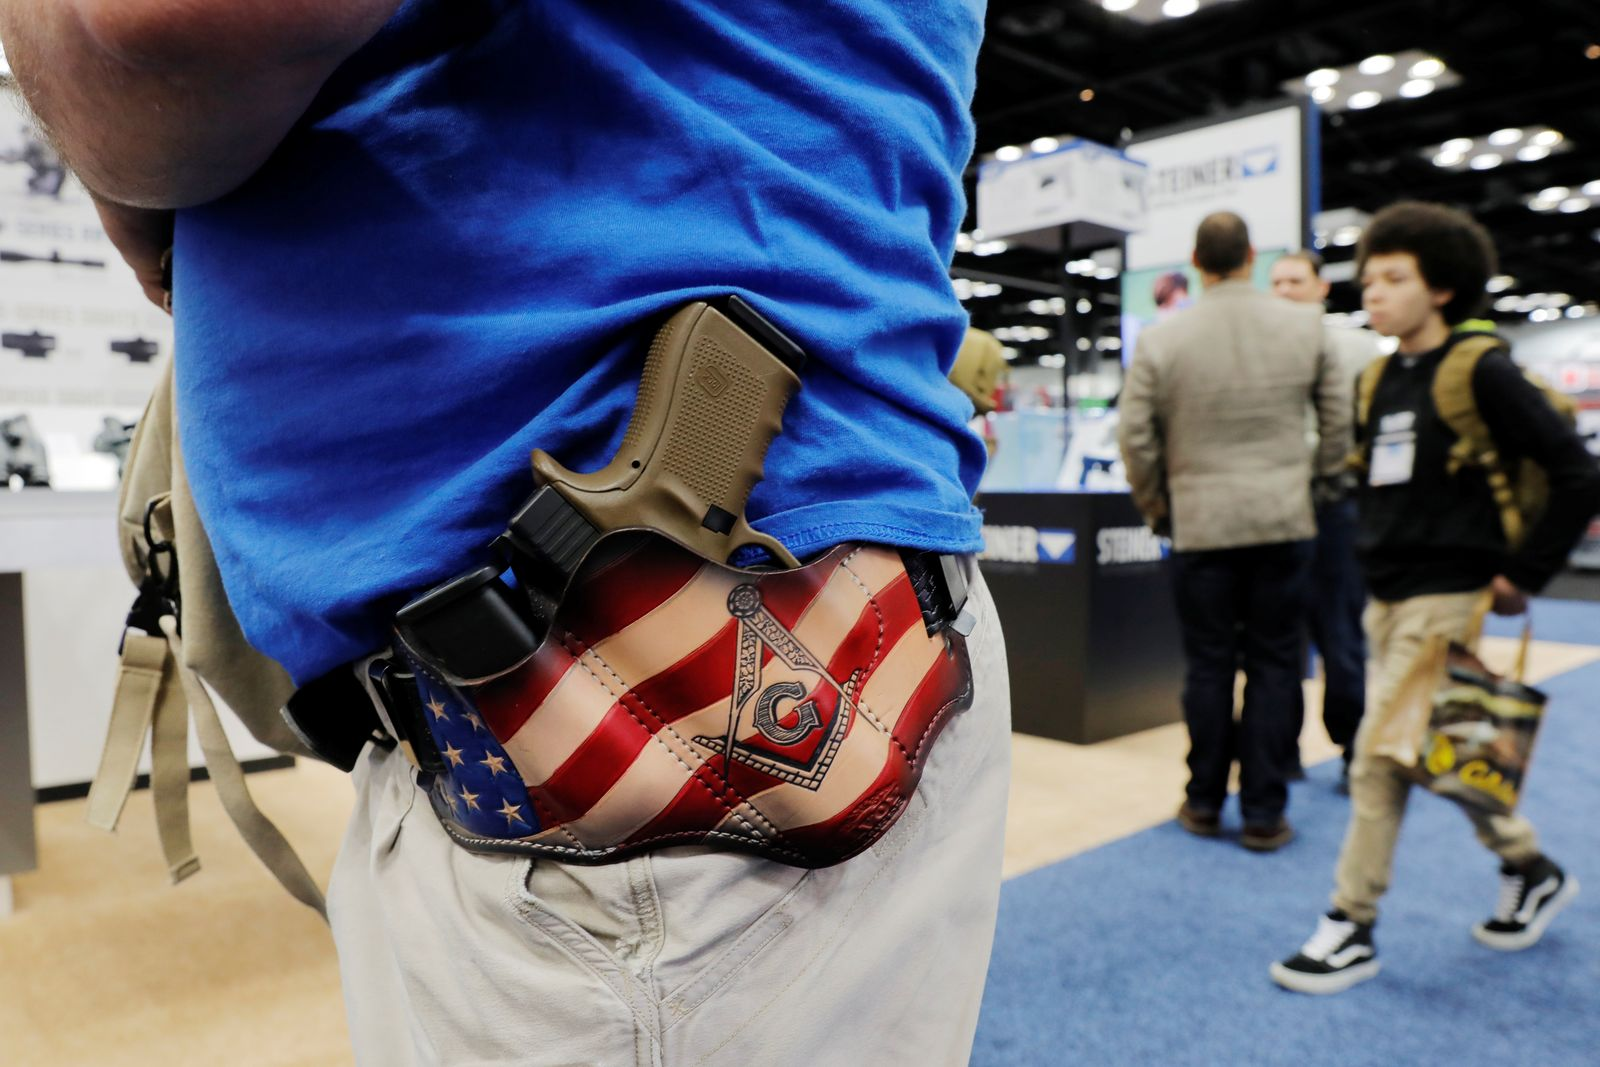 A man carries his Glock handgun in a custom designed holster during the National Rifle Association (NRA) annual meeting in Indianapolis, Indiana